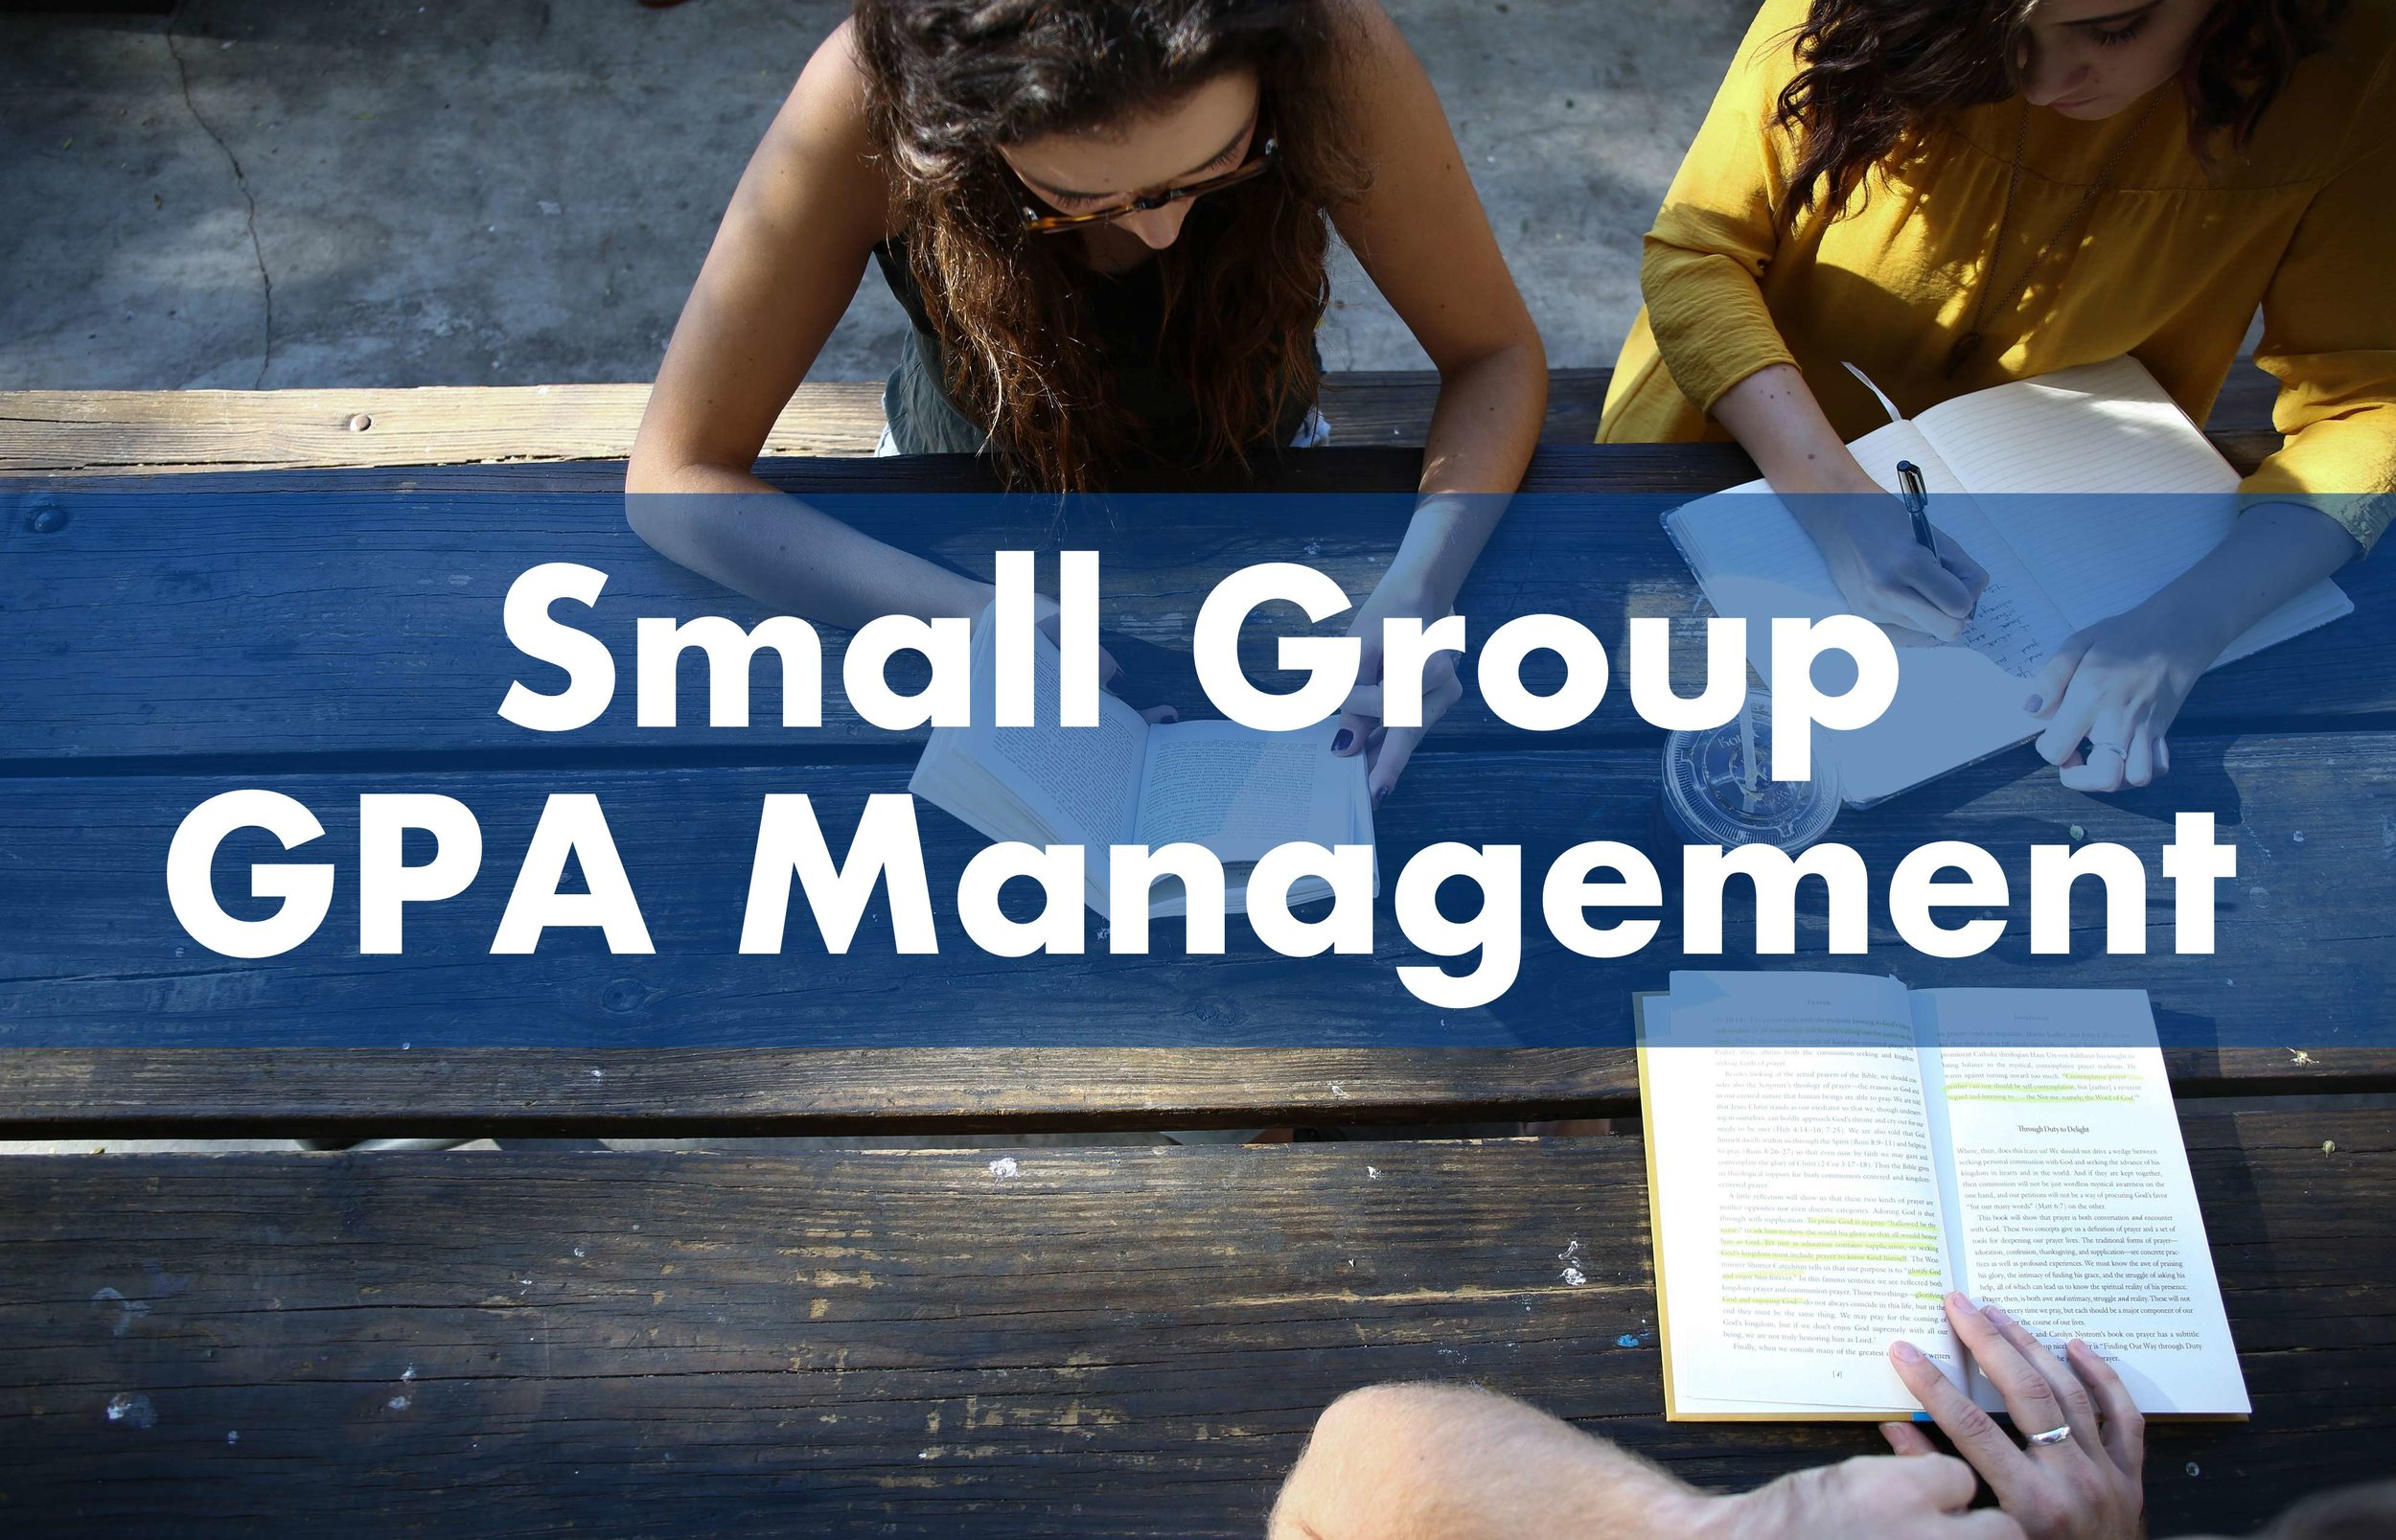 Small Group GPA Management